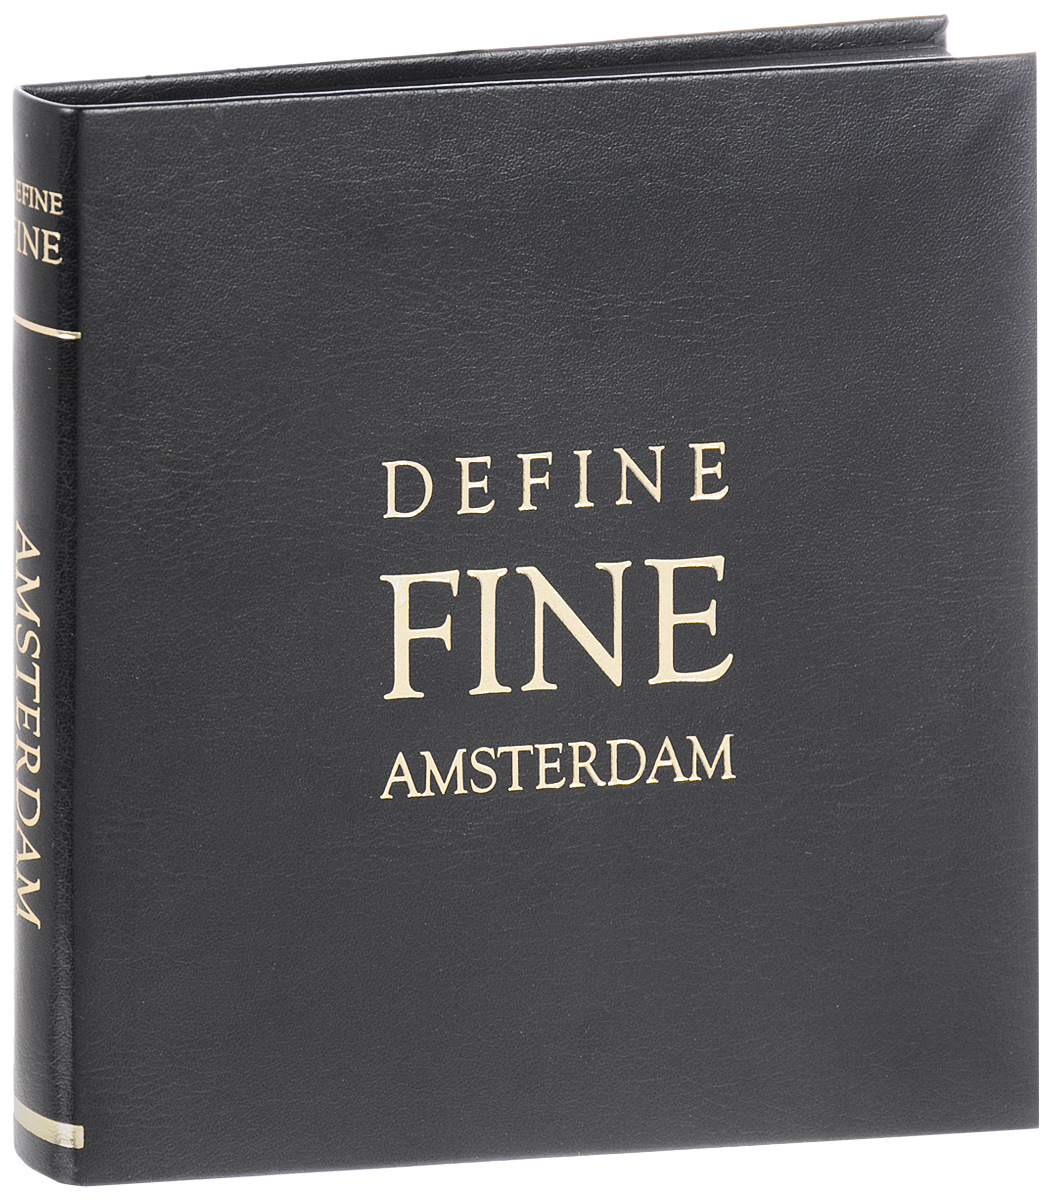 Amsterdam: Define Fine Guide our very own dog